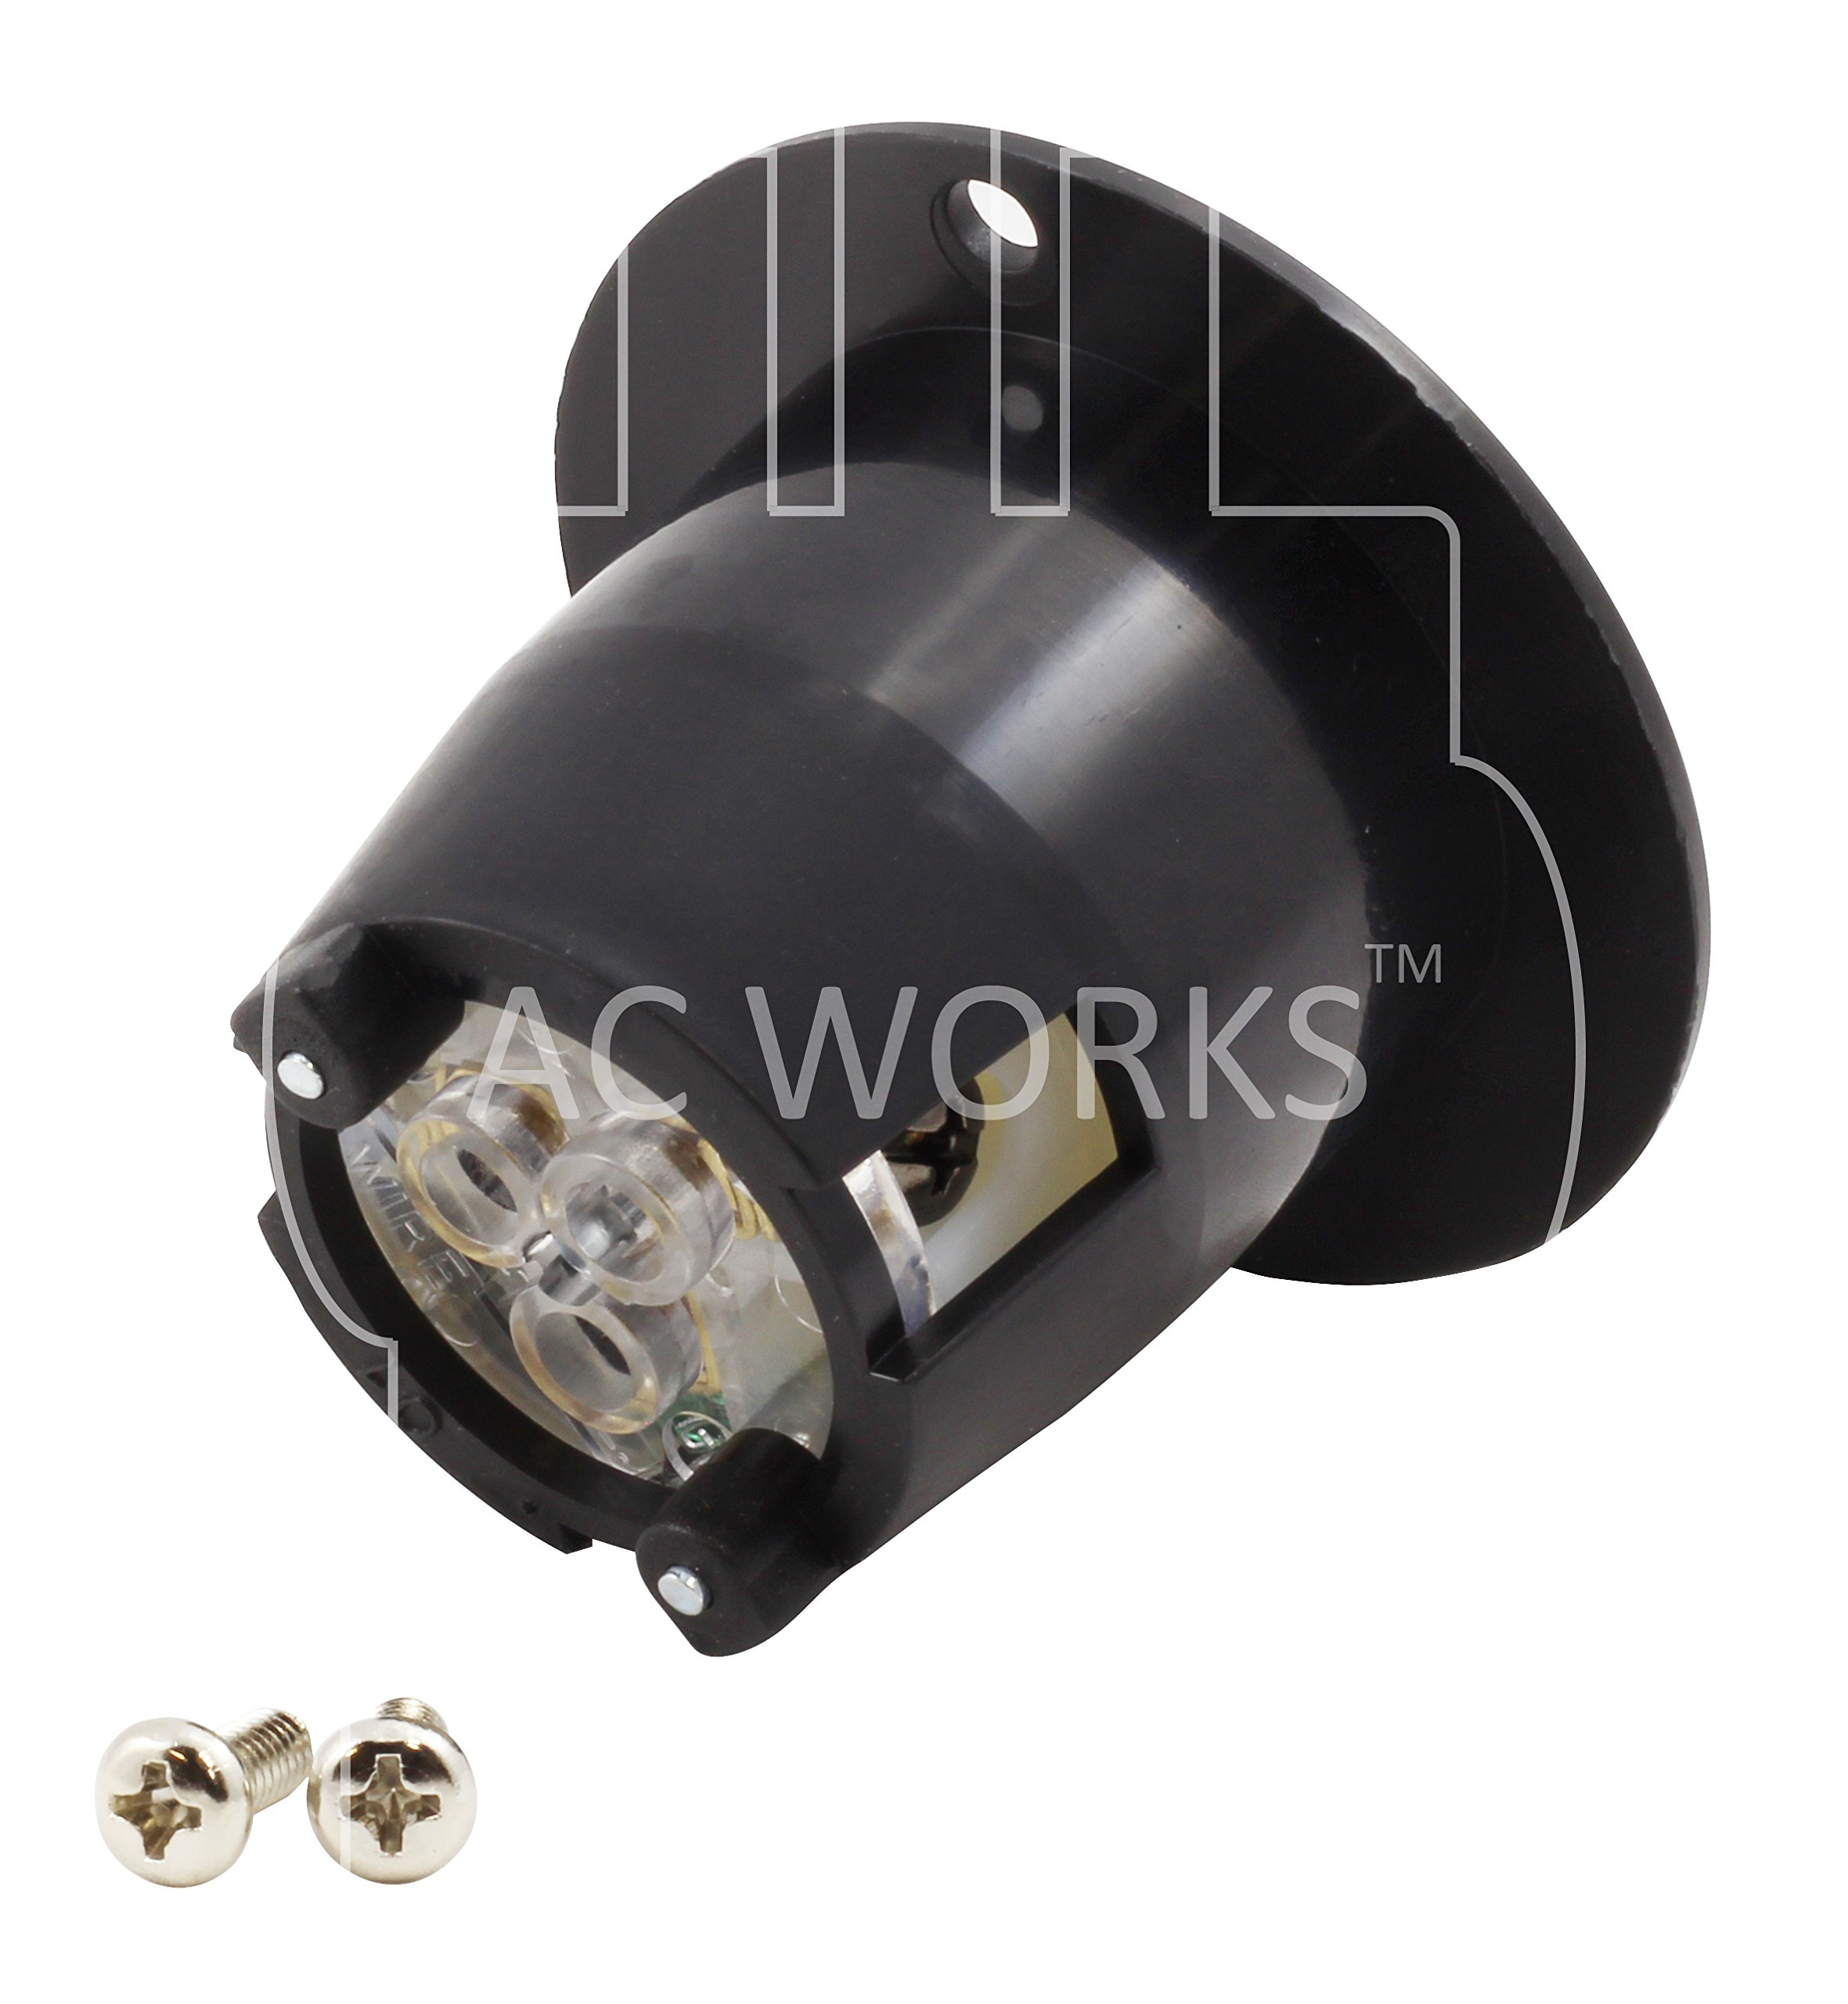 AC WORKS [ASIN520P 20-Amp 125-Volt NEMA 5-20P Flanged Power Input Inlet by AC WORKS (Image #3)